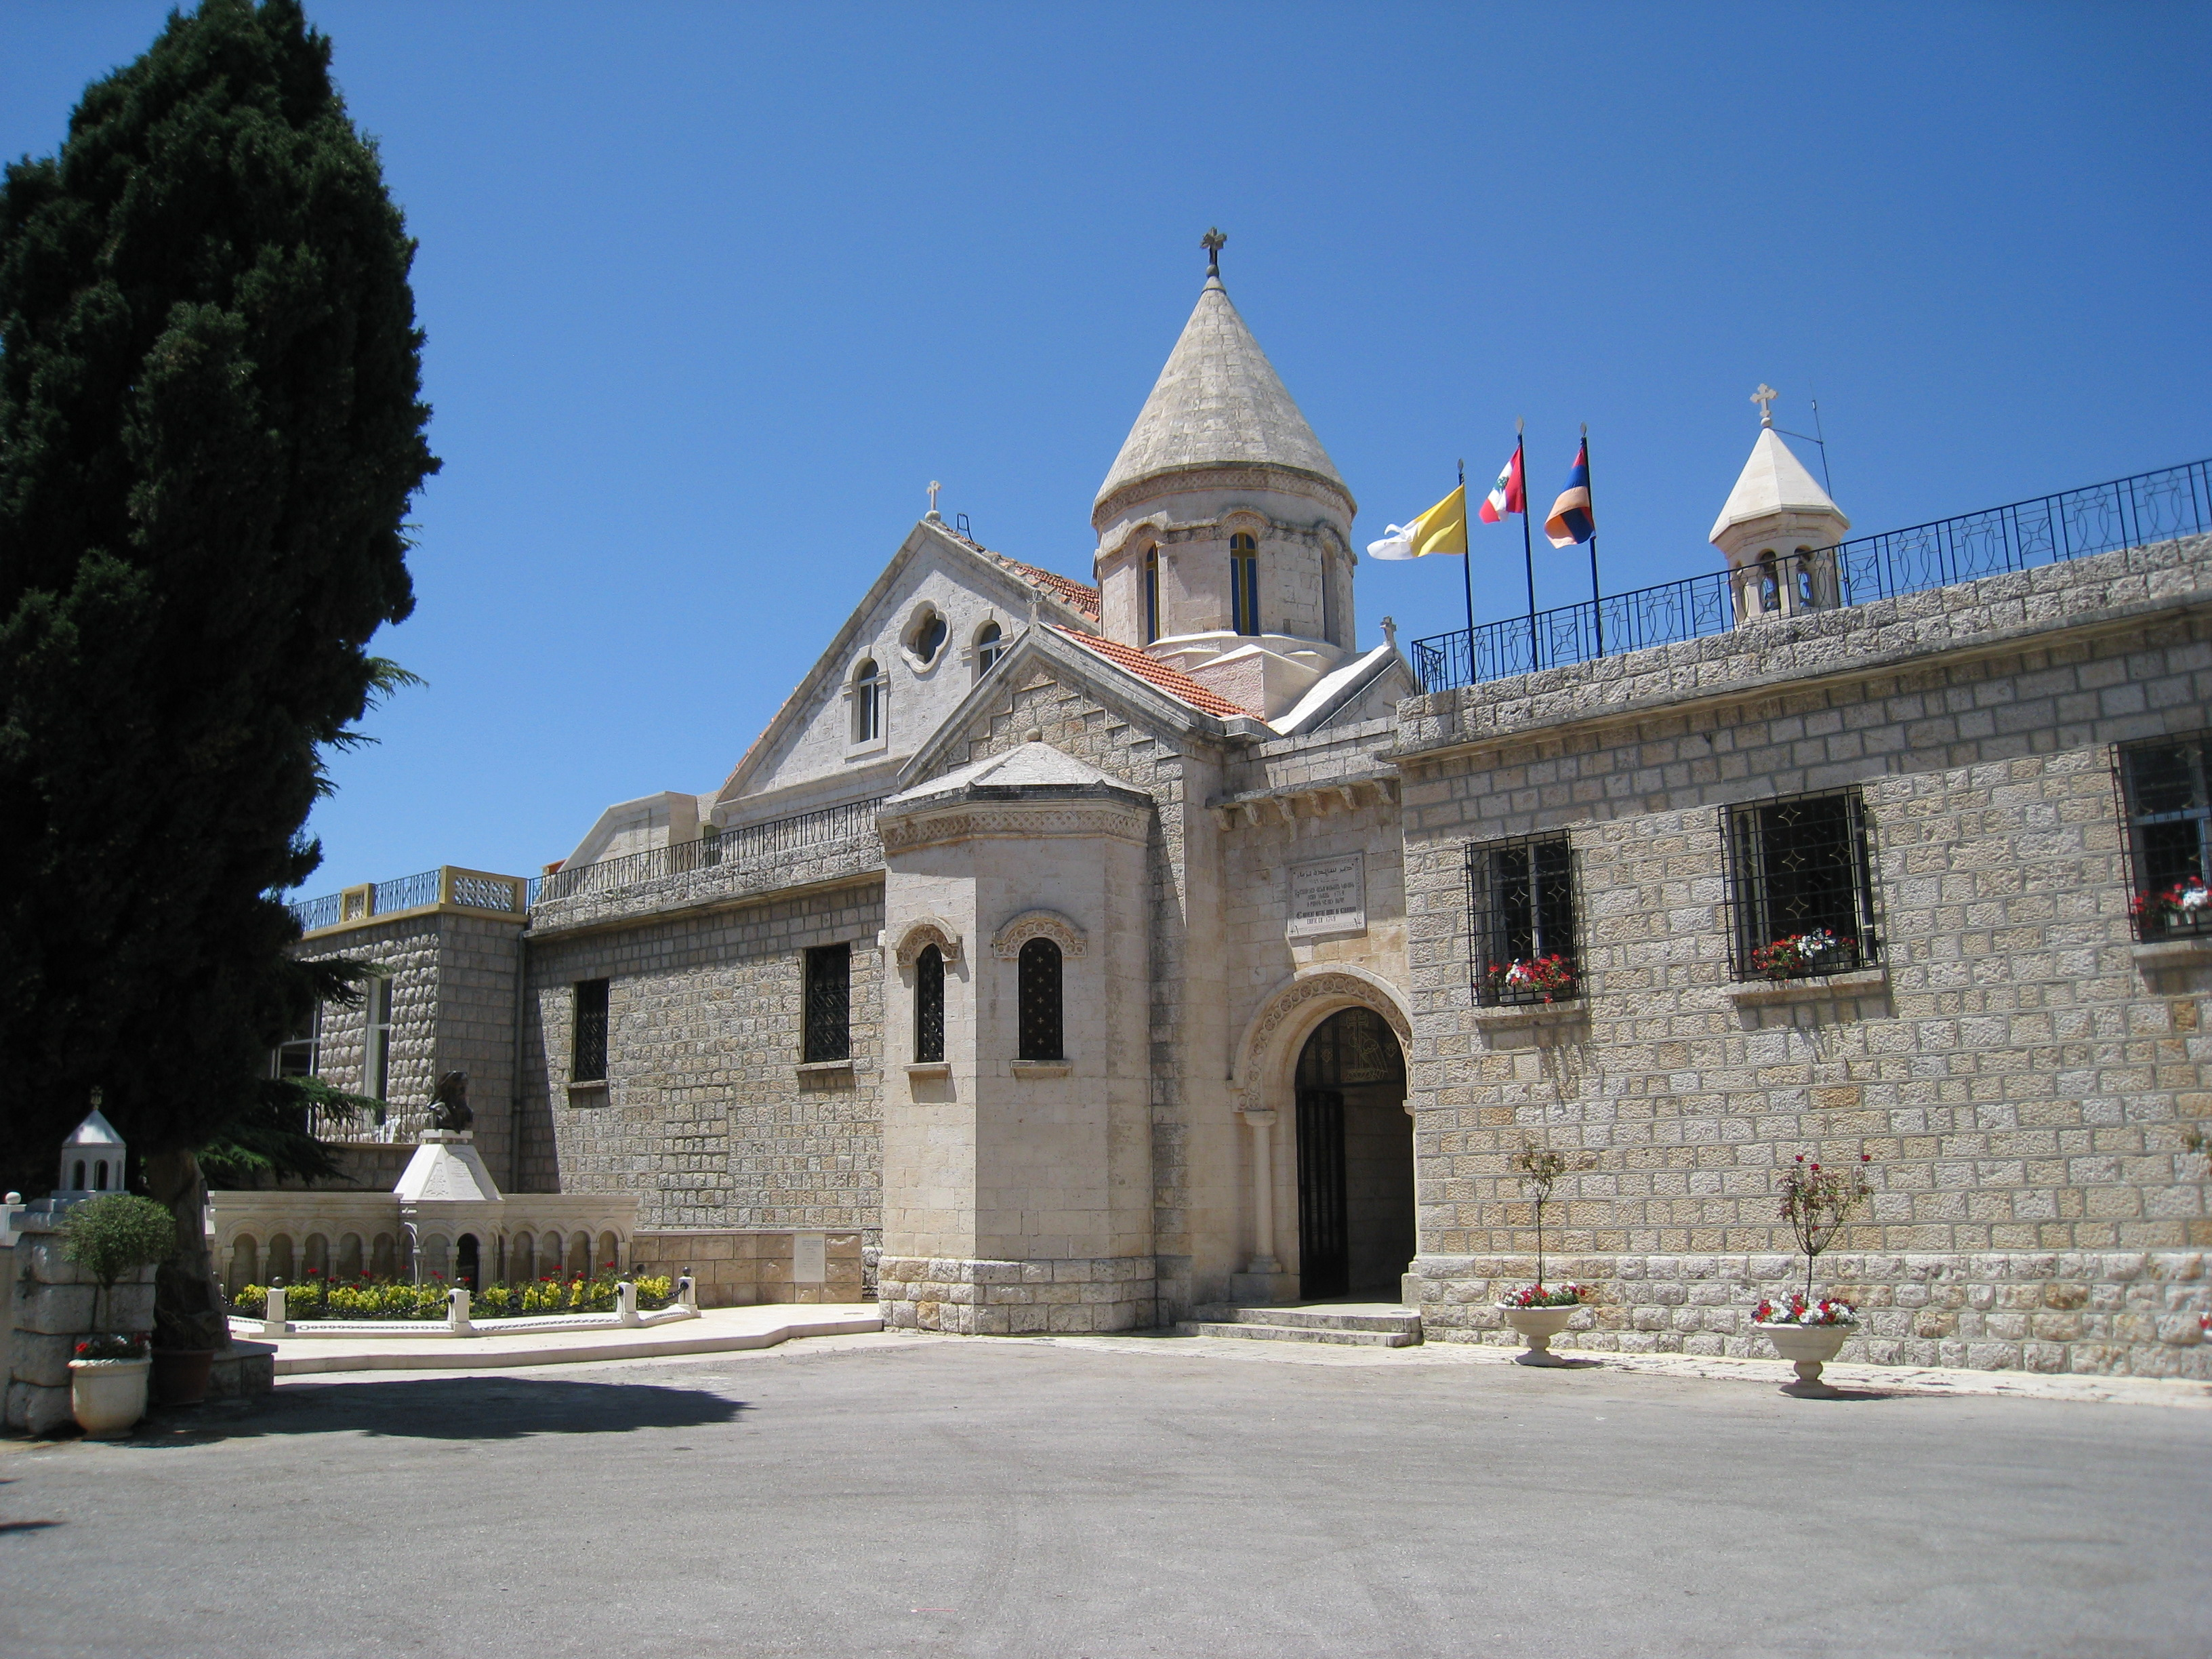 The building of the Armenian Catholic Patriarchate in Bzommar, Lebanon, flying the flags of the Vatican, Lebanon, and Armenia